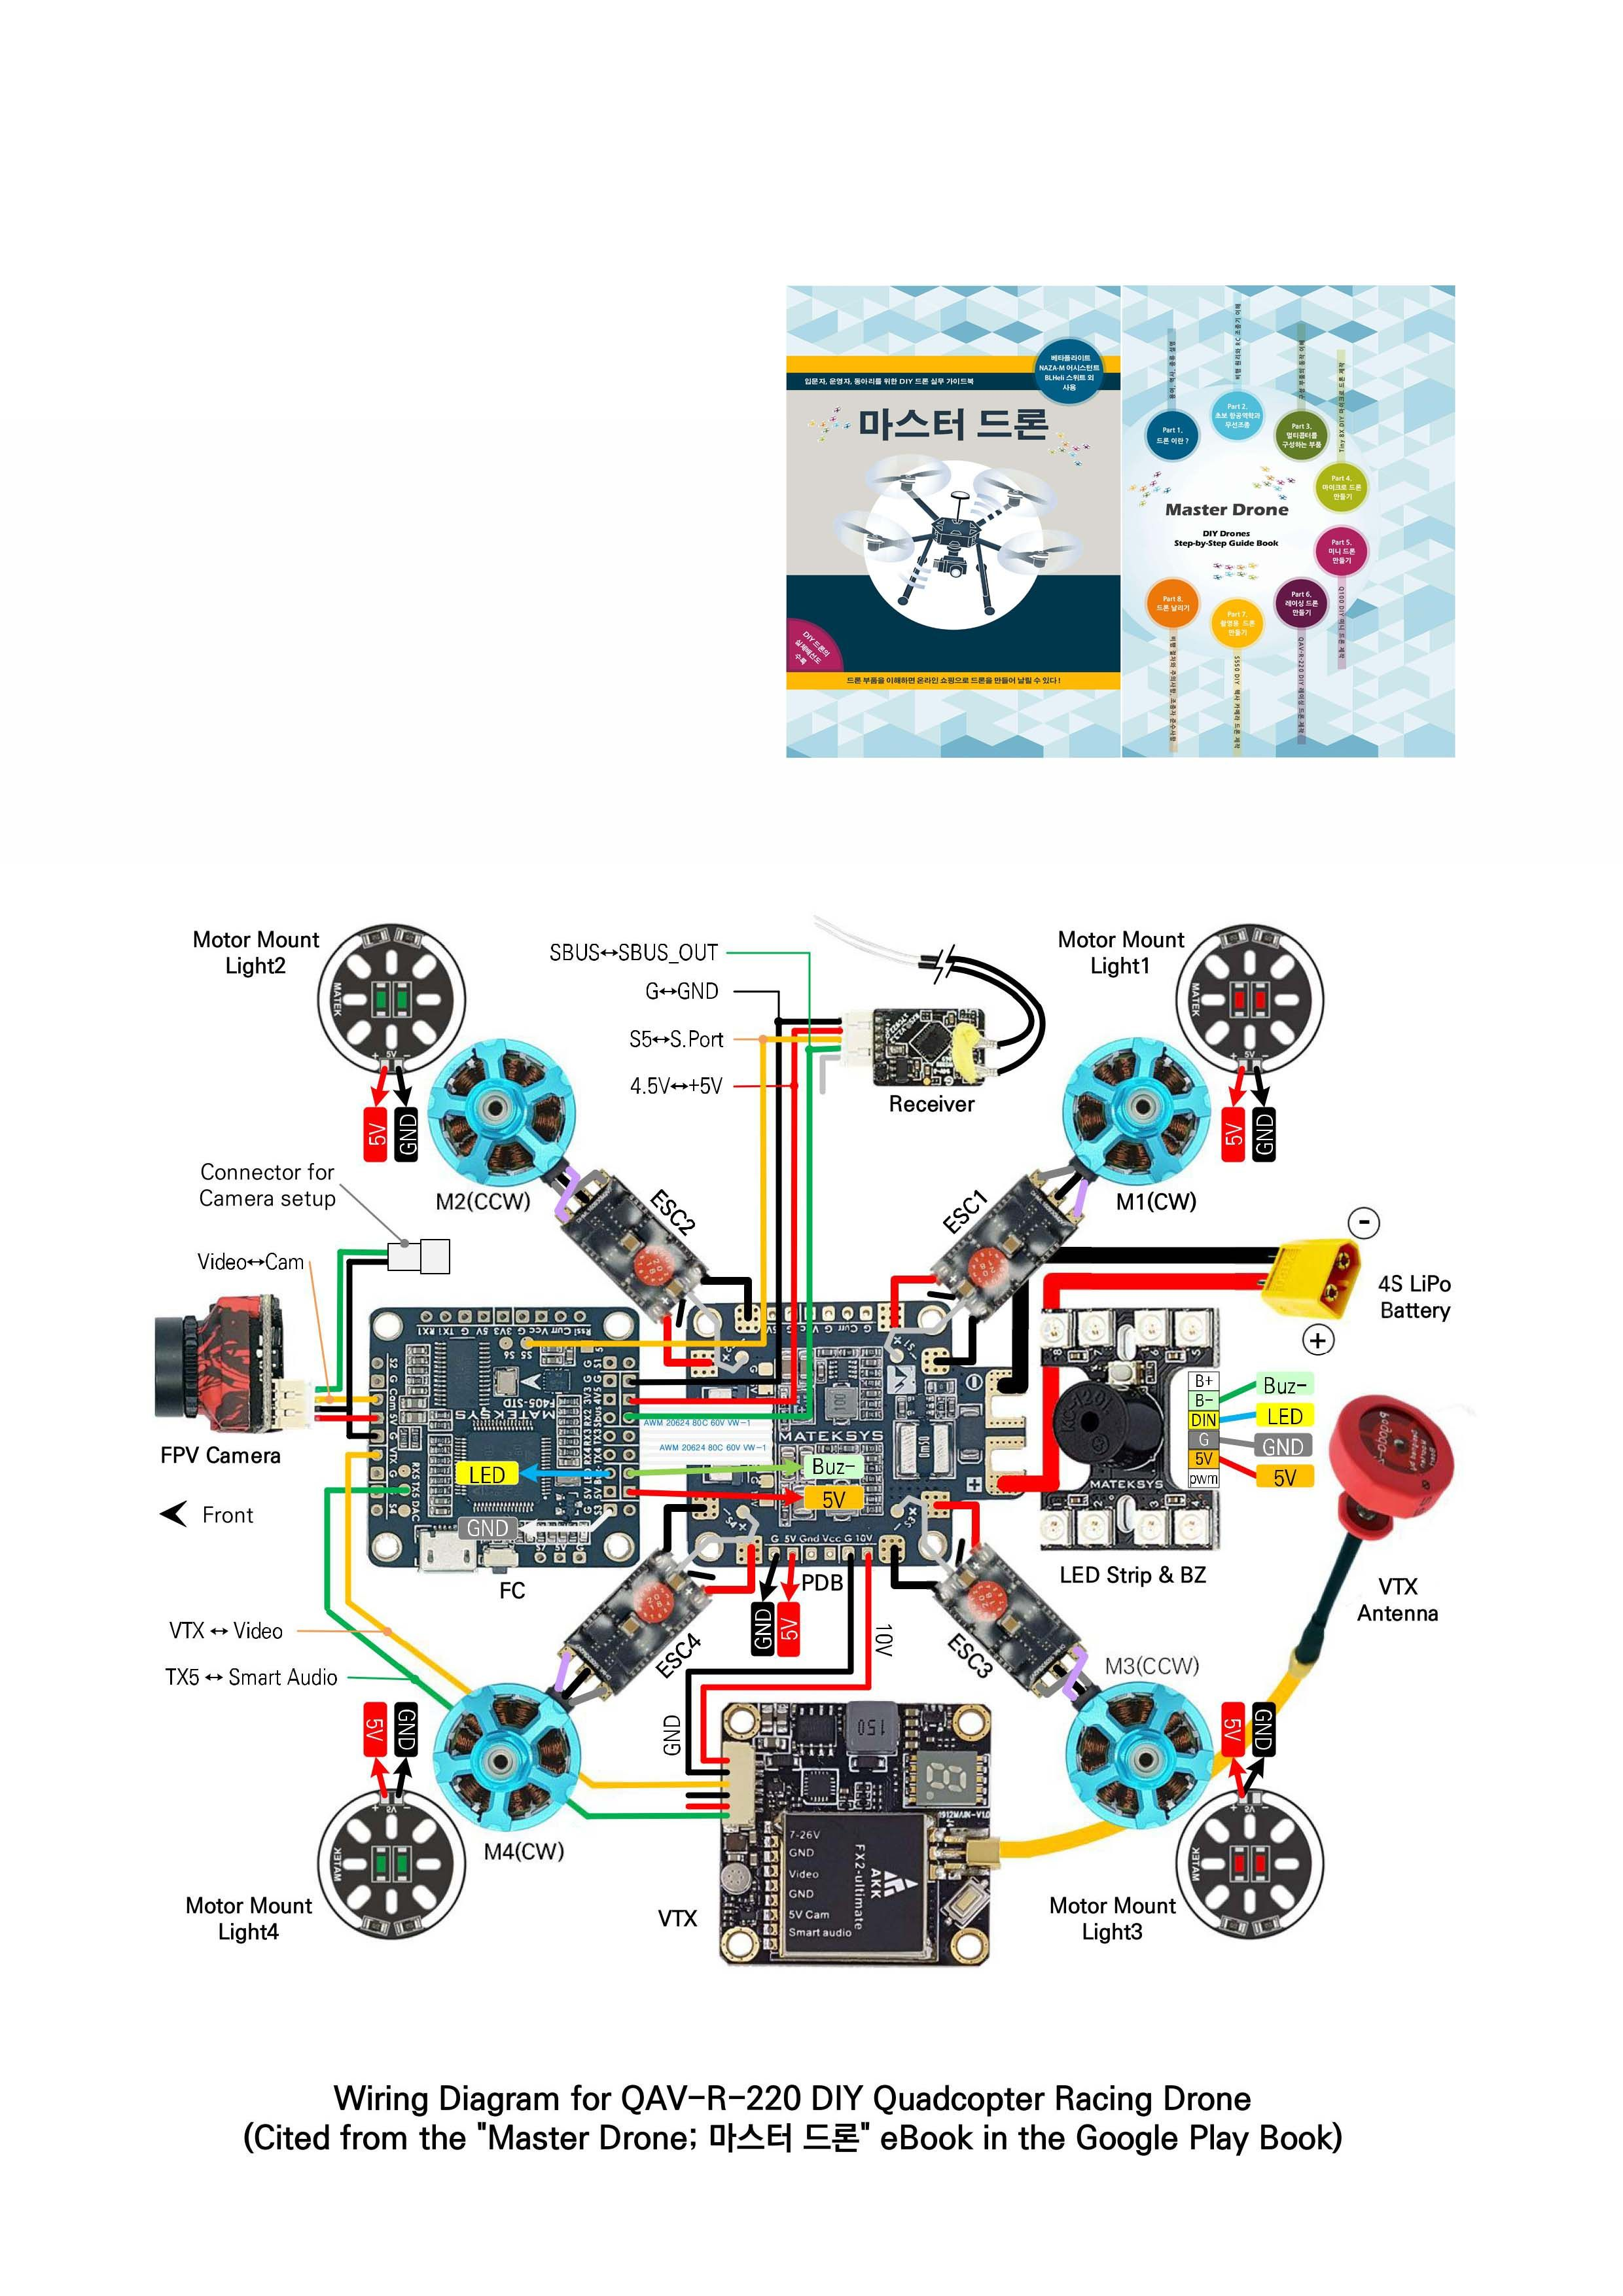 Wiring Diagram For Matek F405 Std From The Master Drone Ebook In